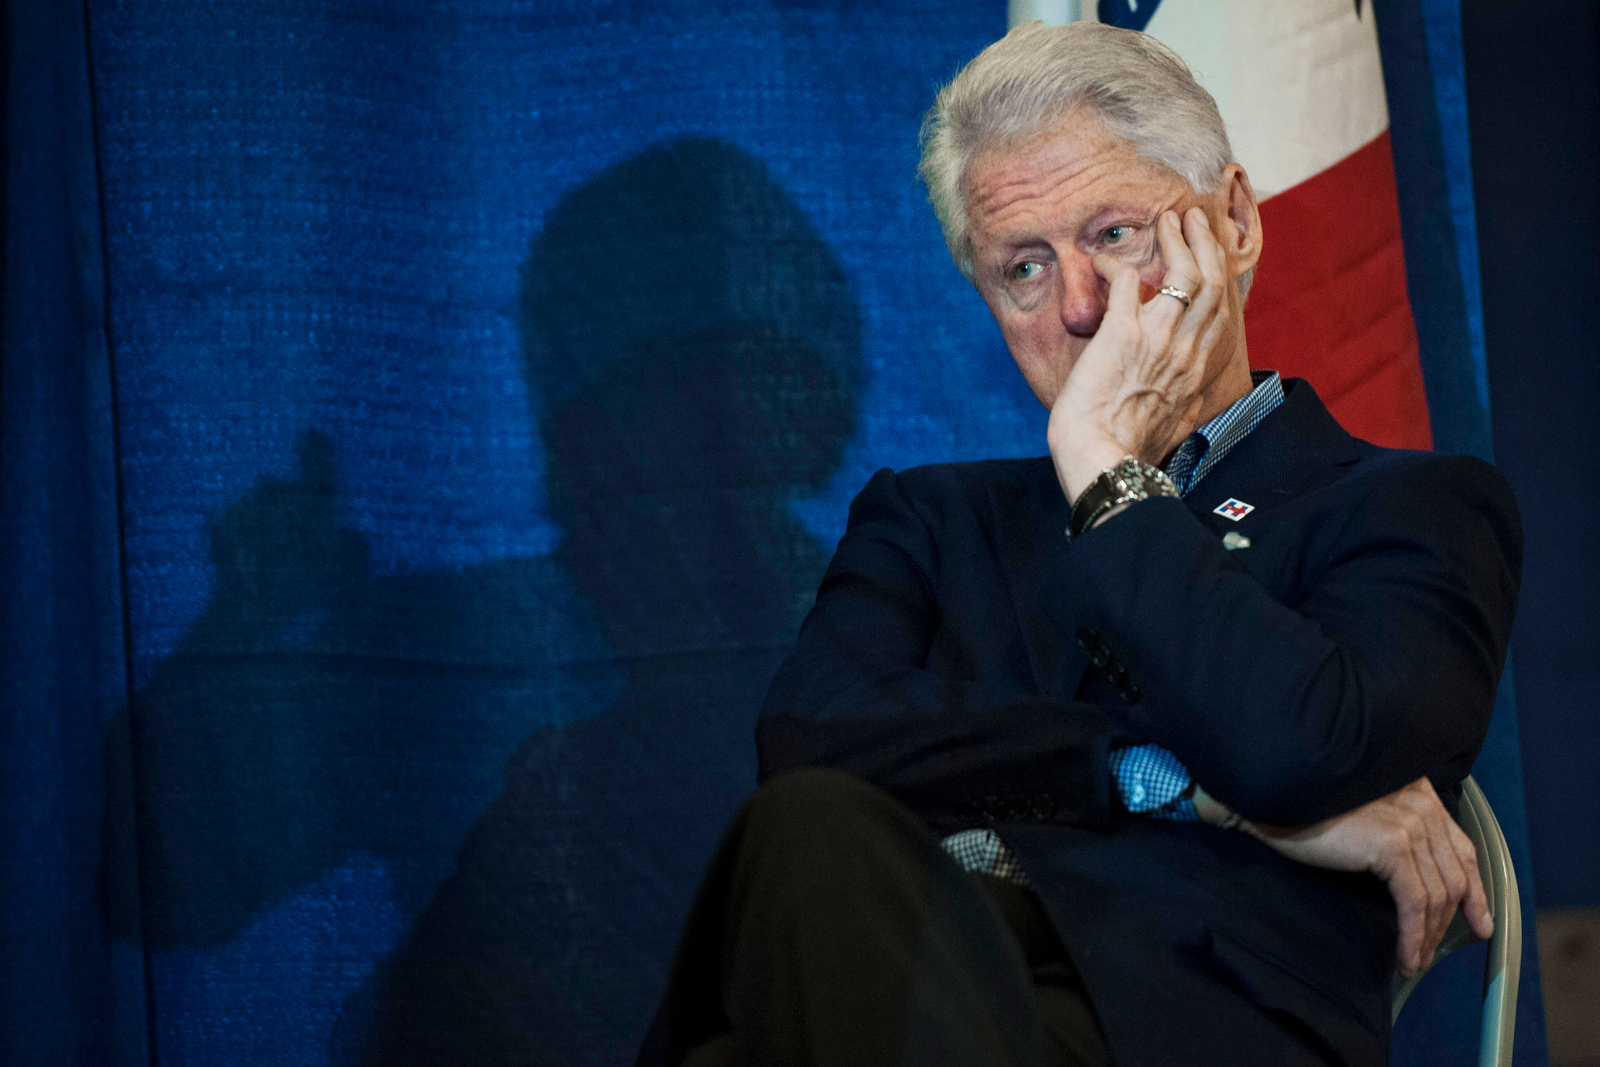 Former U.S. President Bill Clinton watches as Democratic U.S. presidential candidate Hillary Clinton speaks at the Central Iowa Democrats Fall Barbecue in Ames, Iowa November 15, 2015.